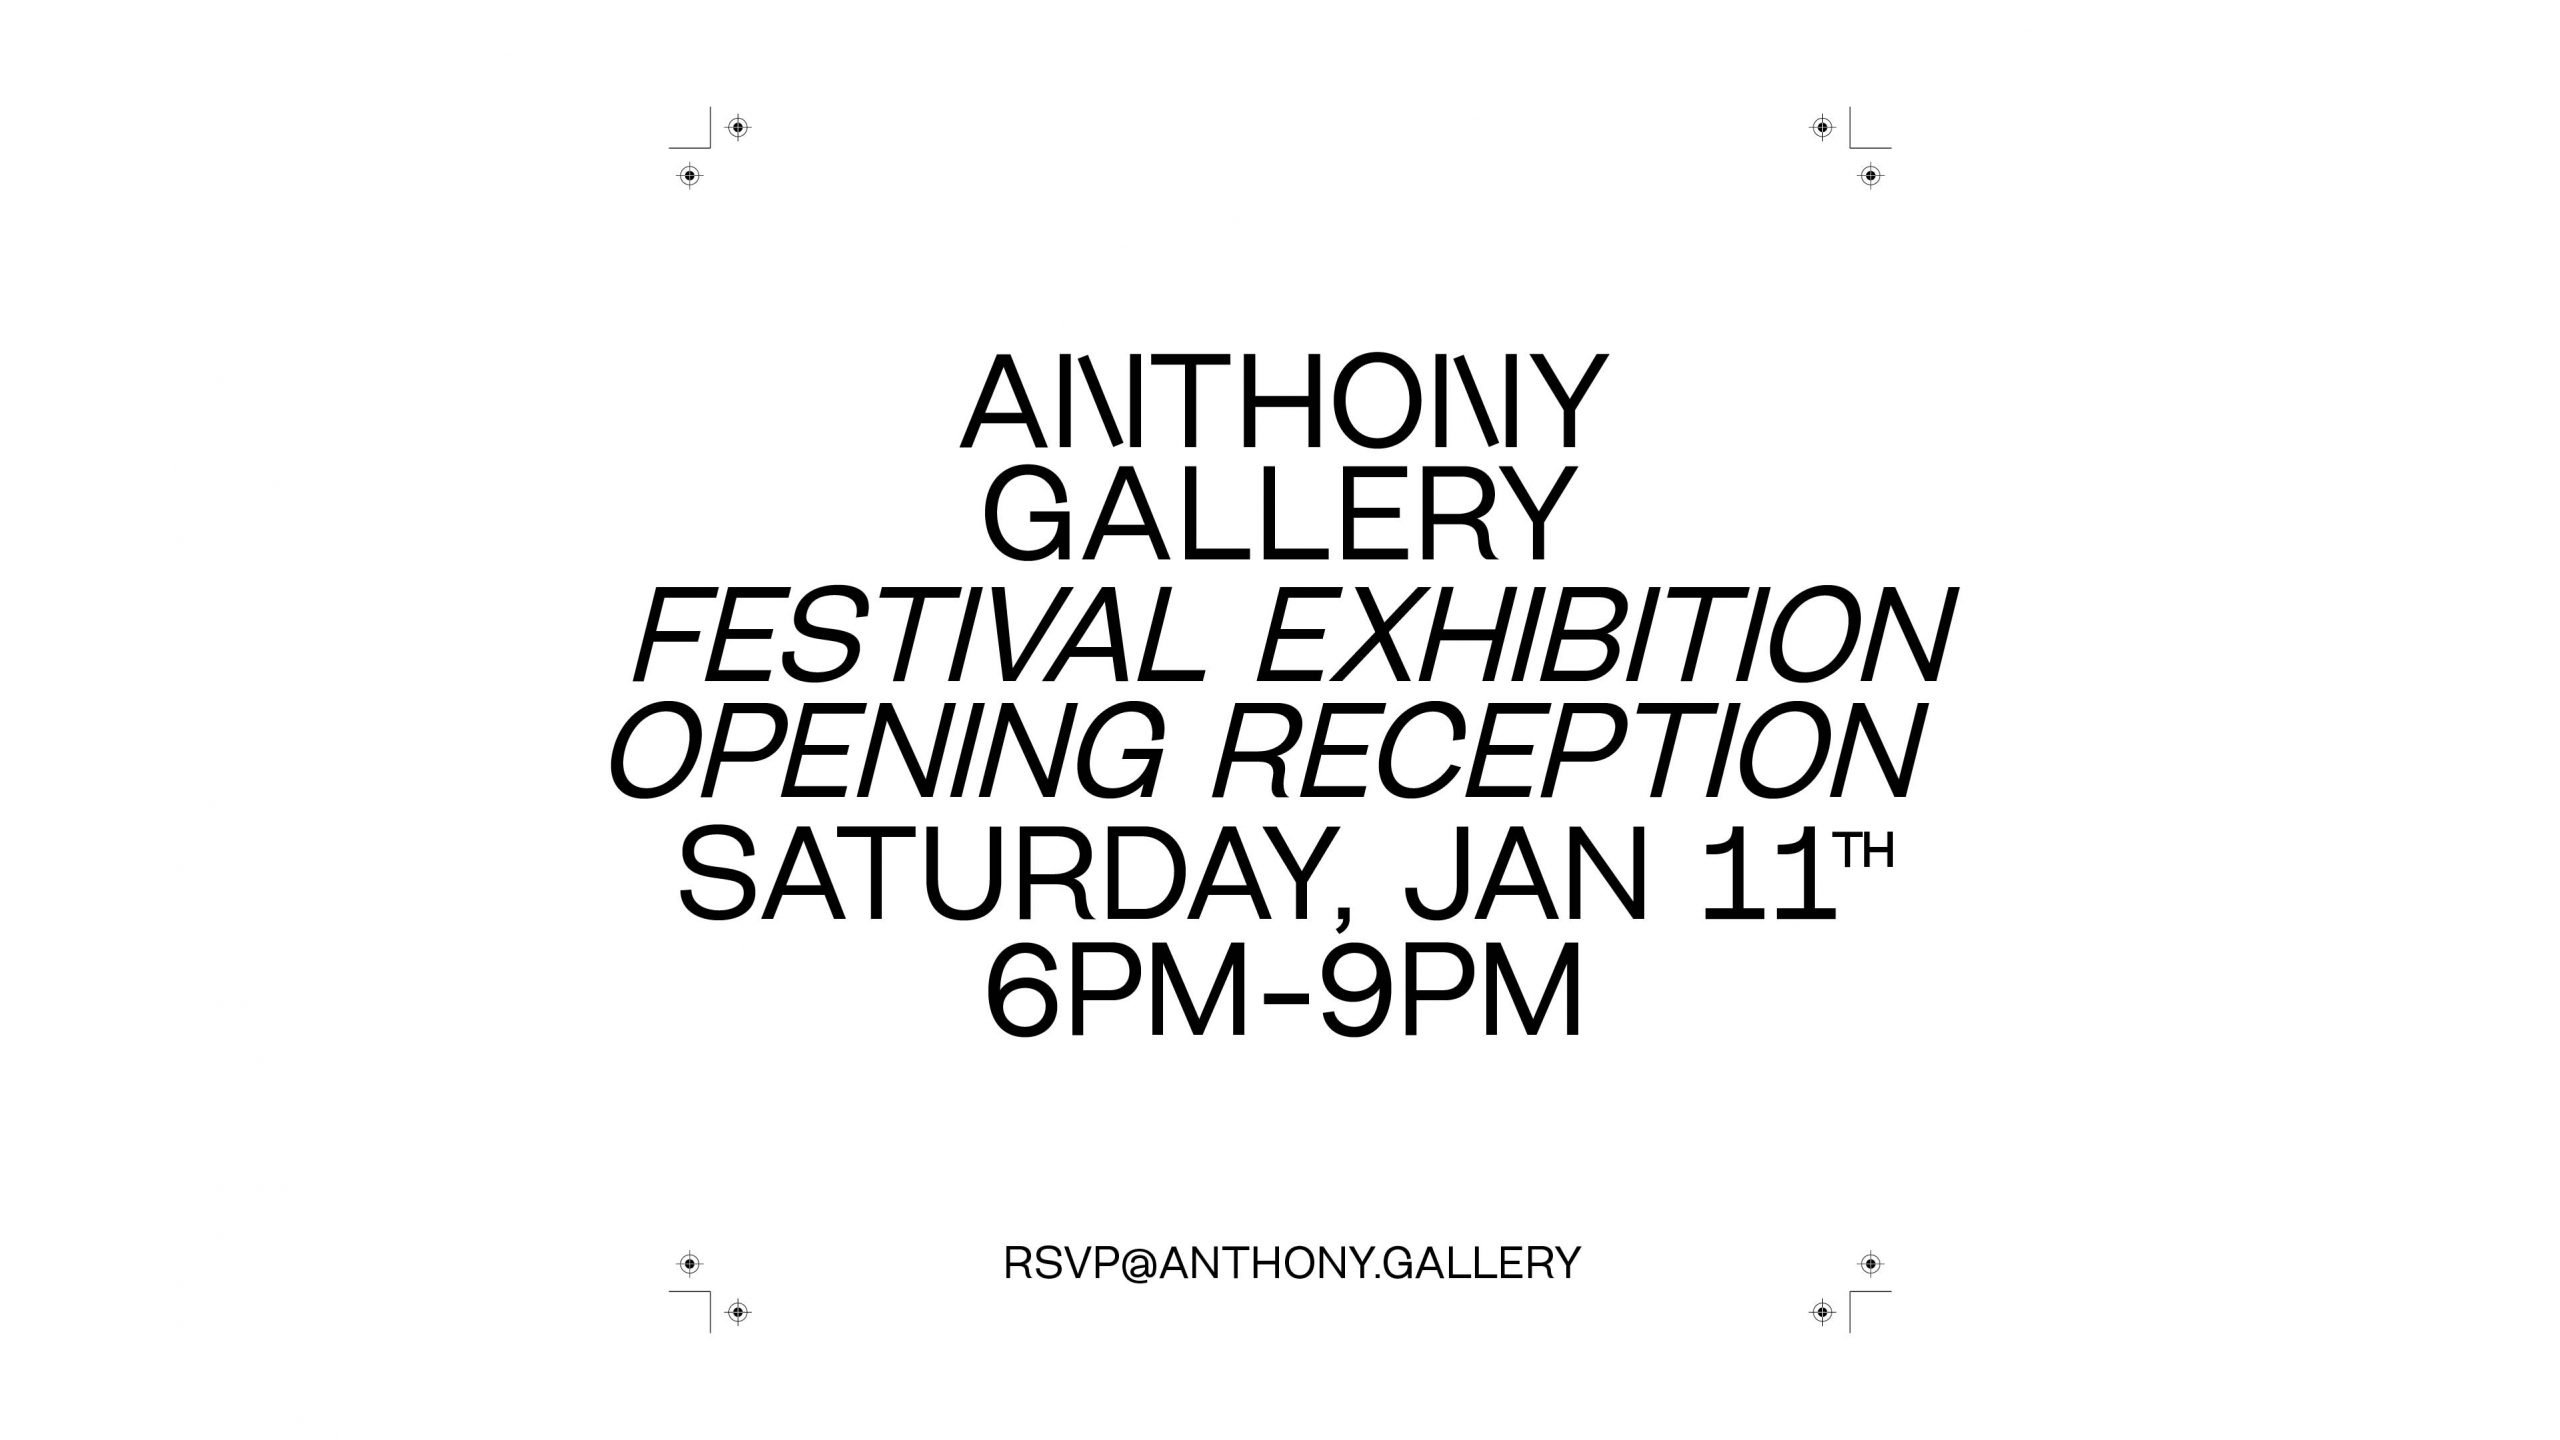 ANTHONY-GALLERY-exhibition-01